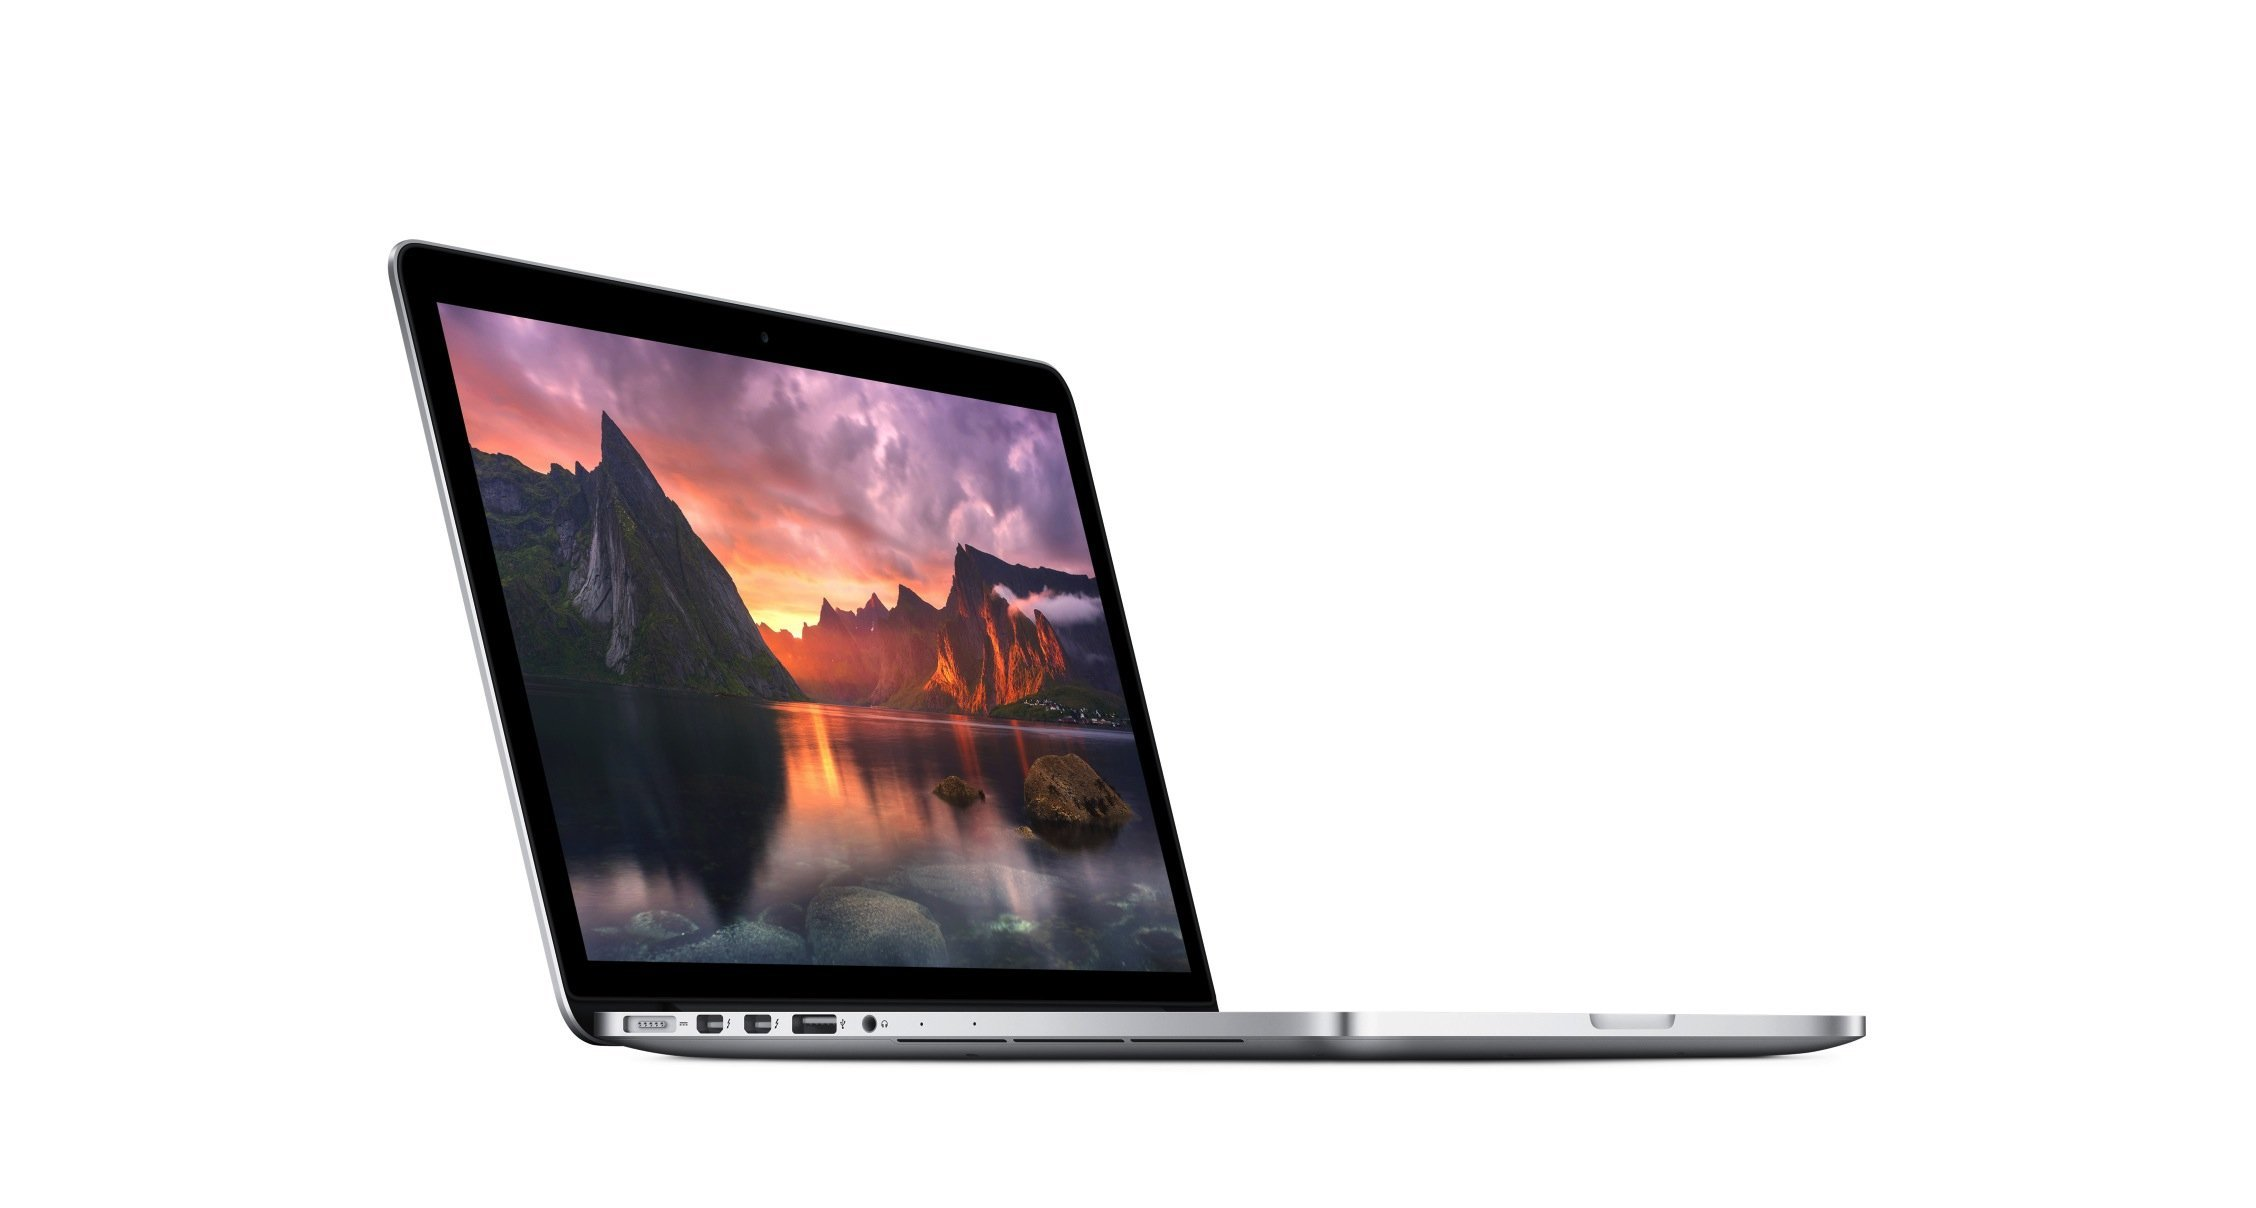 Apple MacBook Pro ME864LL/A 13.3-Inch Laptop with Retina Display (OLD VERSION) (Renewed)